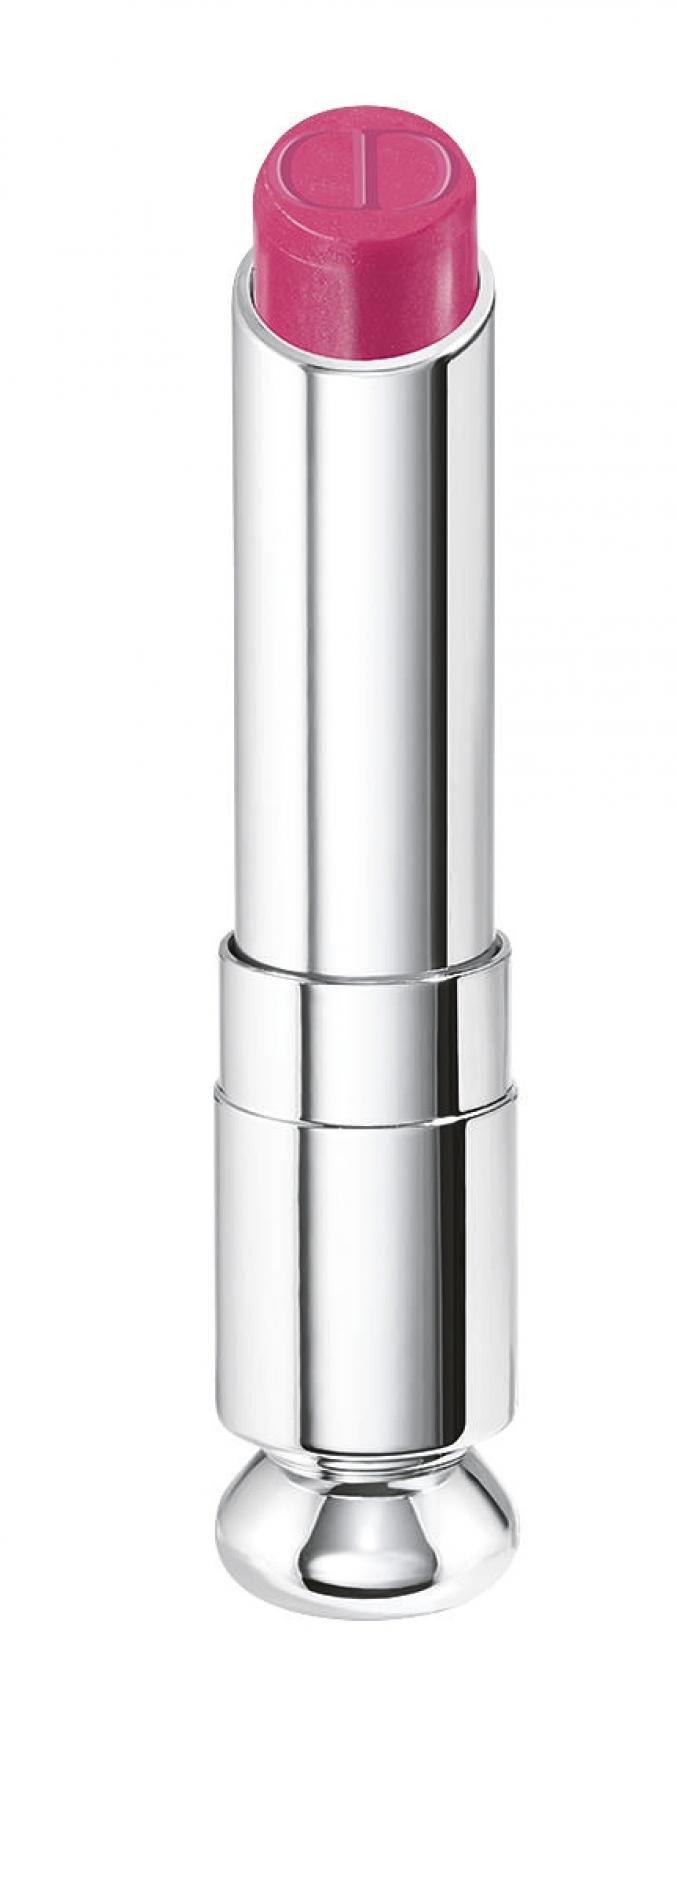 Dior Addict - The new lipstick (Dior)